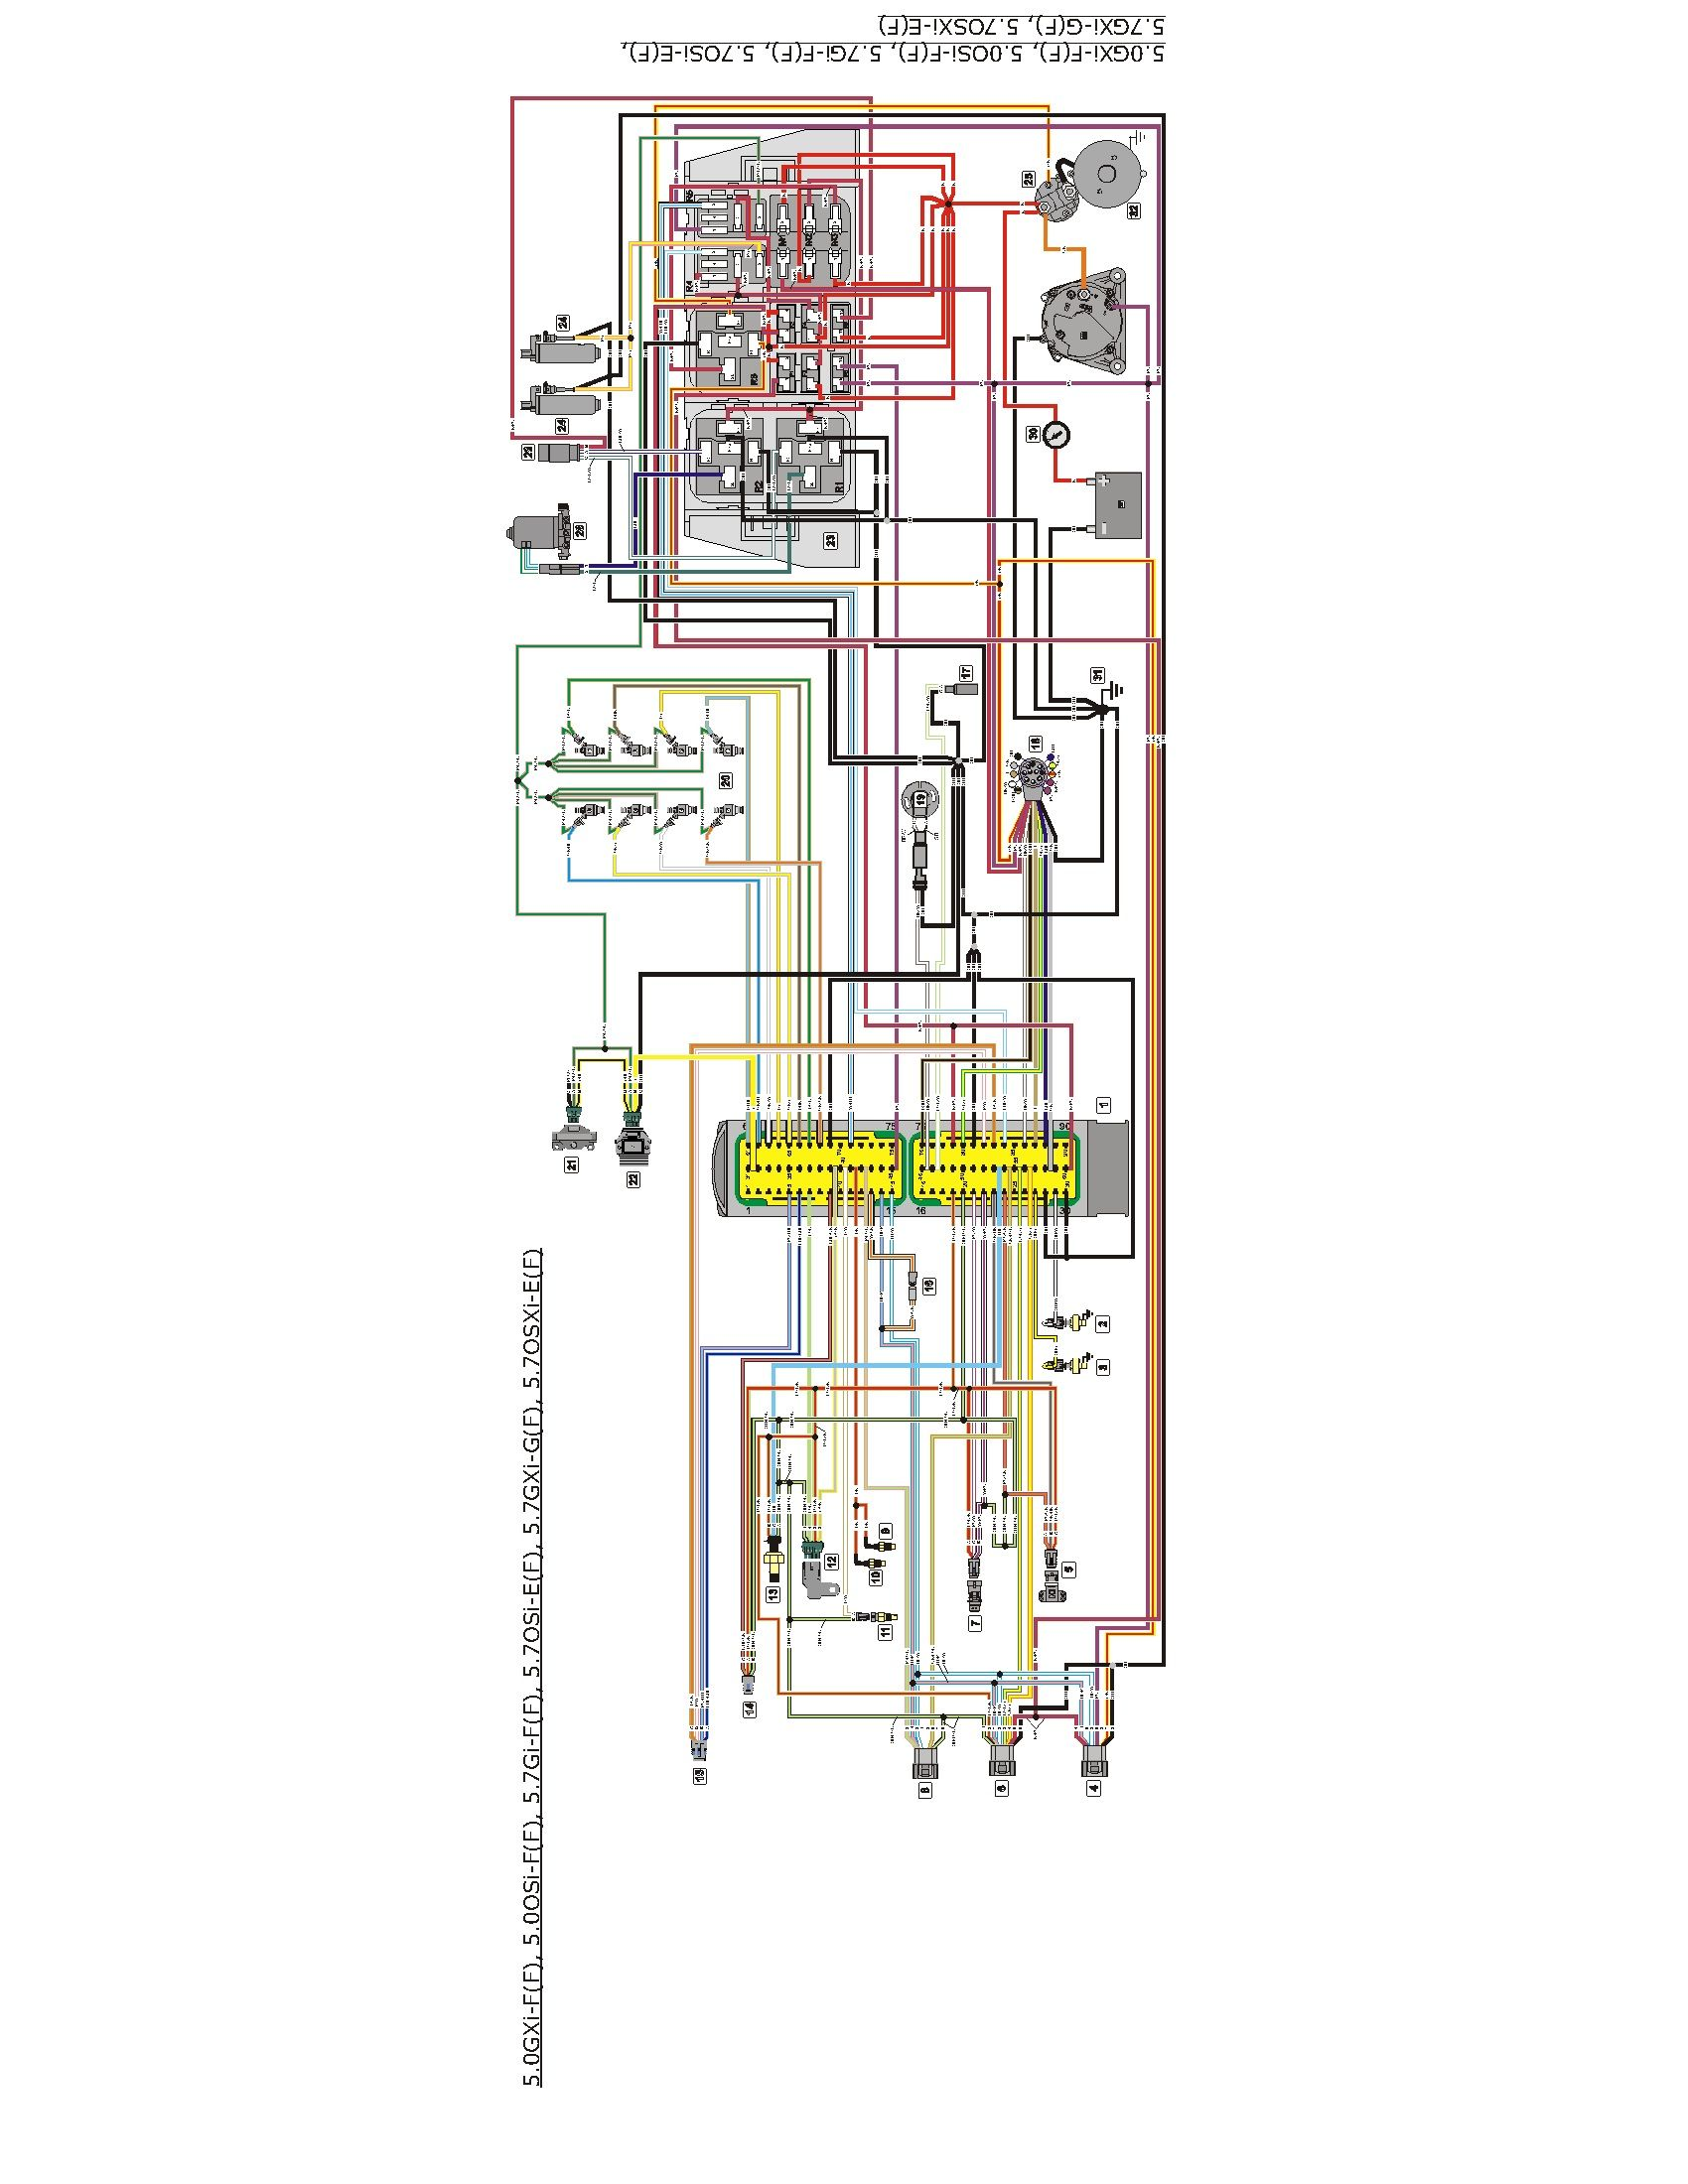 38e0106861e0fe47e508530985b32839 volvo penta 5 7 engine wiring diagram yate pinterest volvo Wire Harness Assembly at readyjetset.co